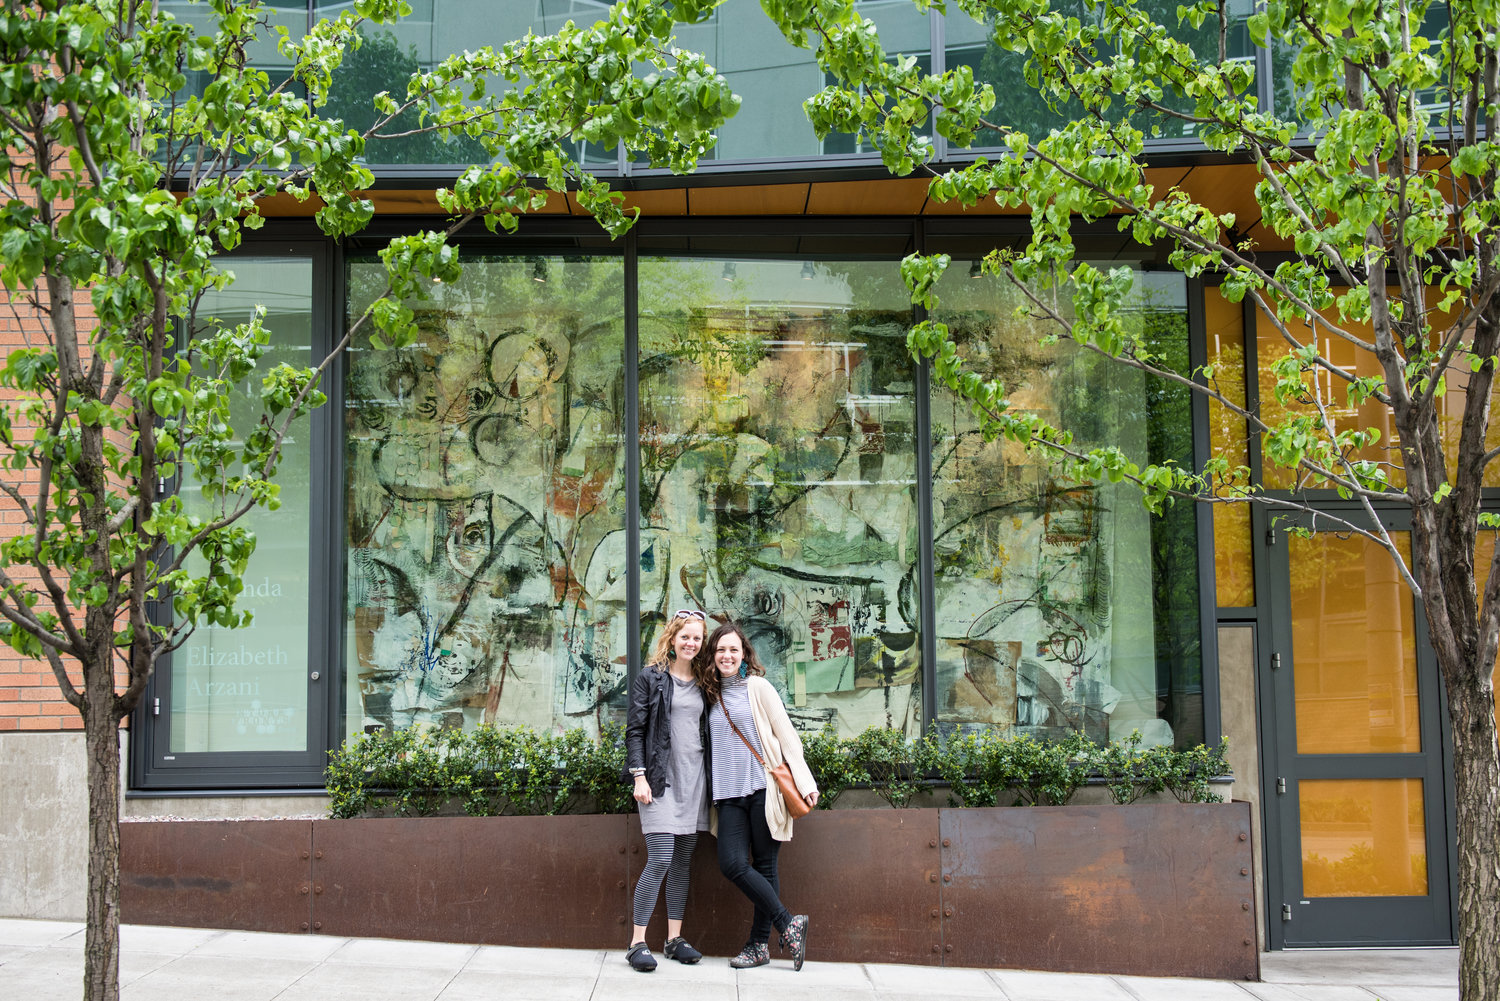 Harrison Storefront: Tiny Human Moments by artists Amanda Amsel and Elizabeth Arzani |  photo by Natalia Dotto for  Seattle Refined